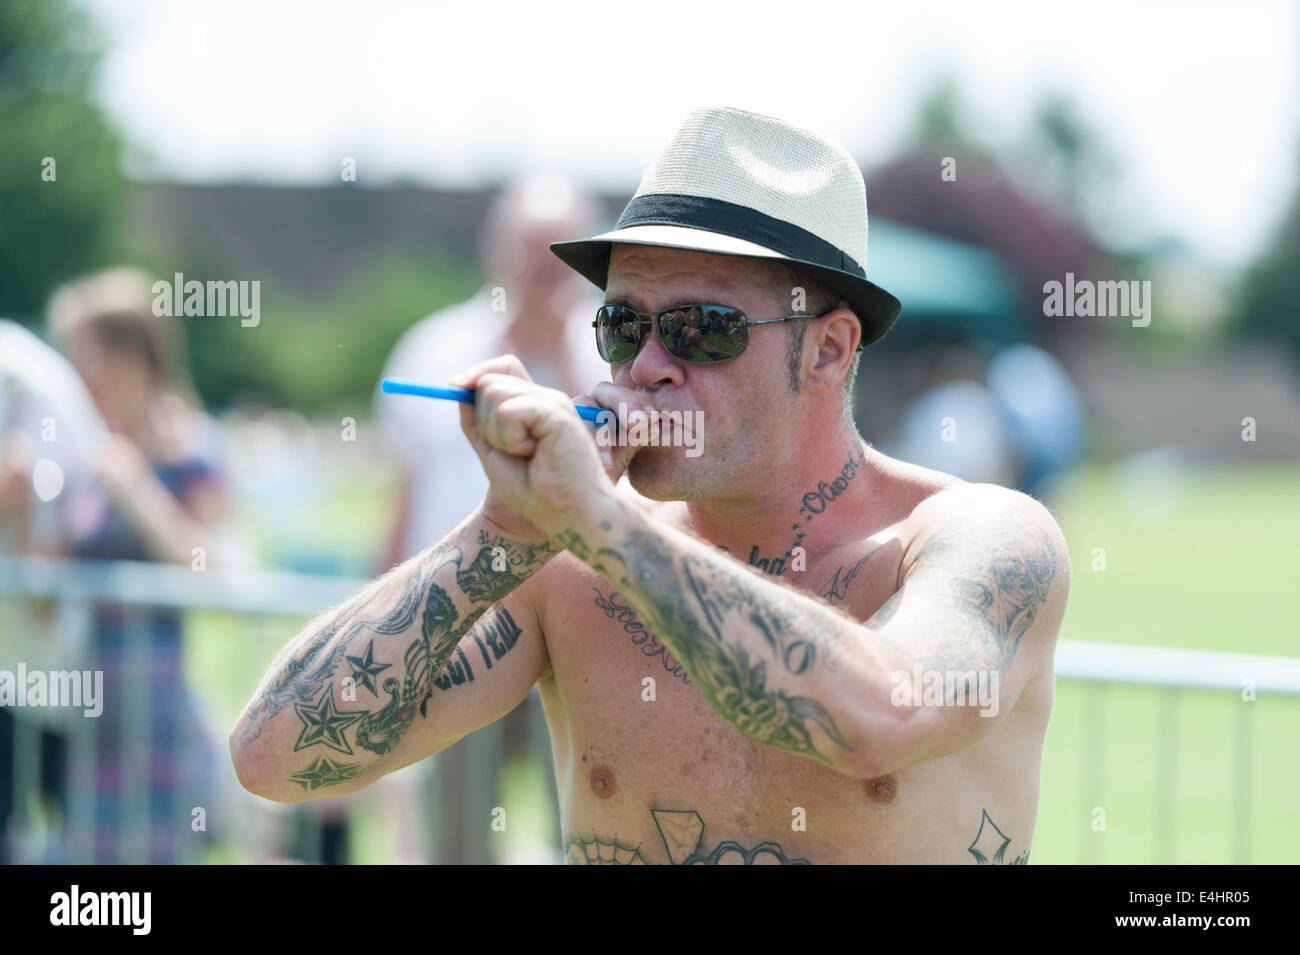 Witcham near Ely Cambridgeshire UK 12th July 2014. A competitor takes part in the 44th World Pea Shooting Championships. - Stock Image